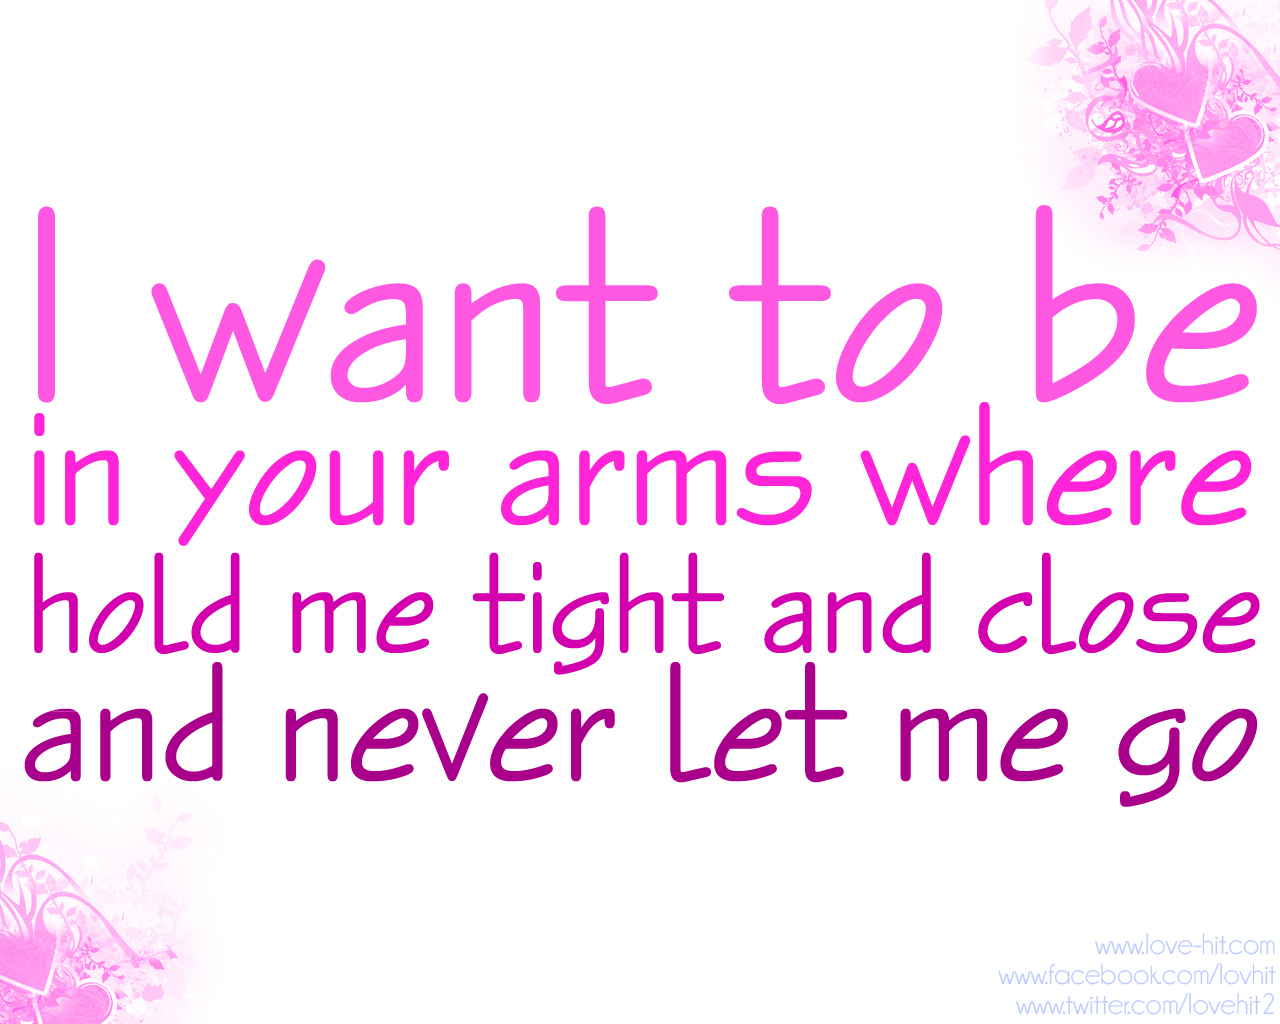 I want to be in your arms where you hold me tight and clos and never let me go